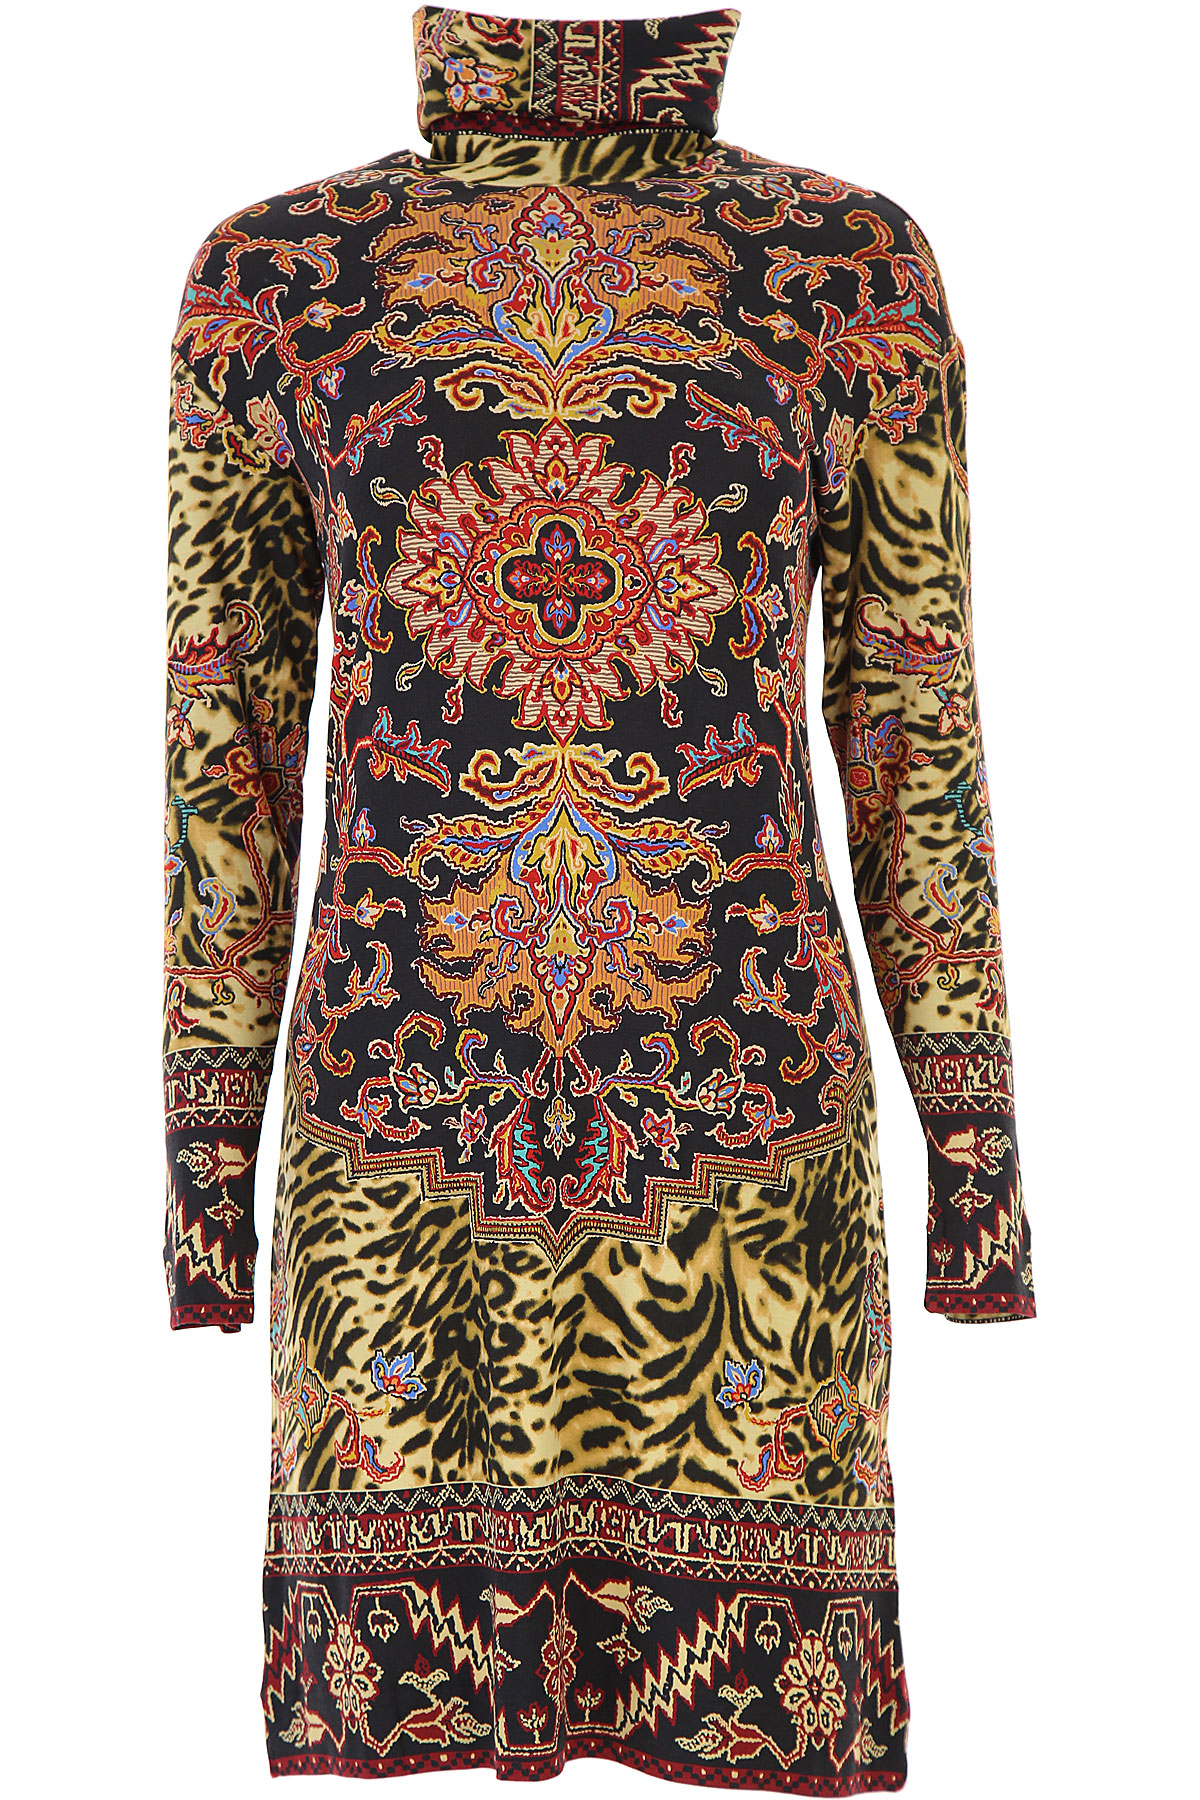 Etro Dress for Women, Evening Cocktail Party On Sale, Black, Viscose, 2019, 6 8